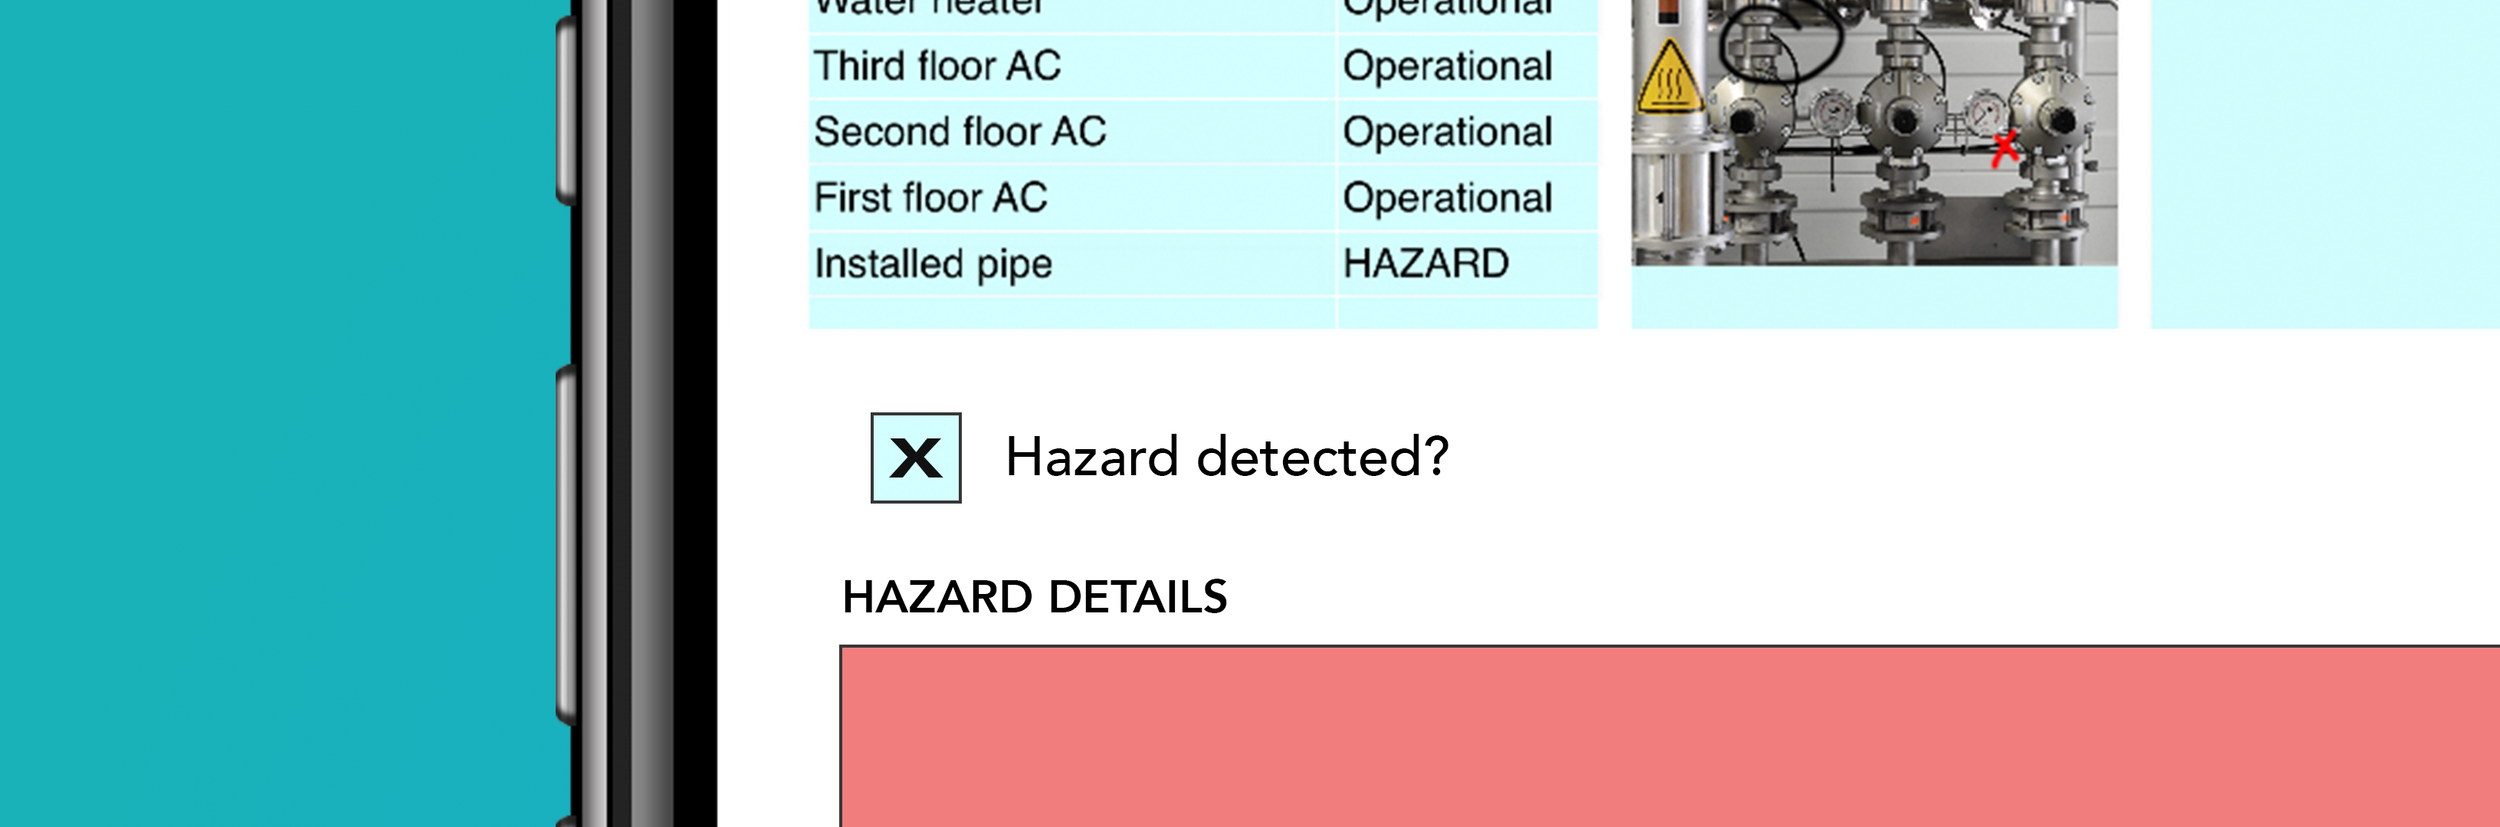 Mobile inspection form displays Dynamic Field Properties functionality